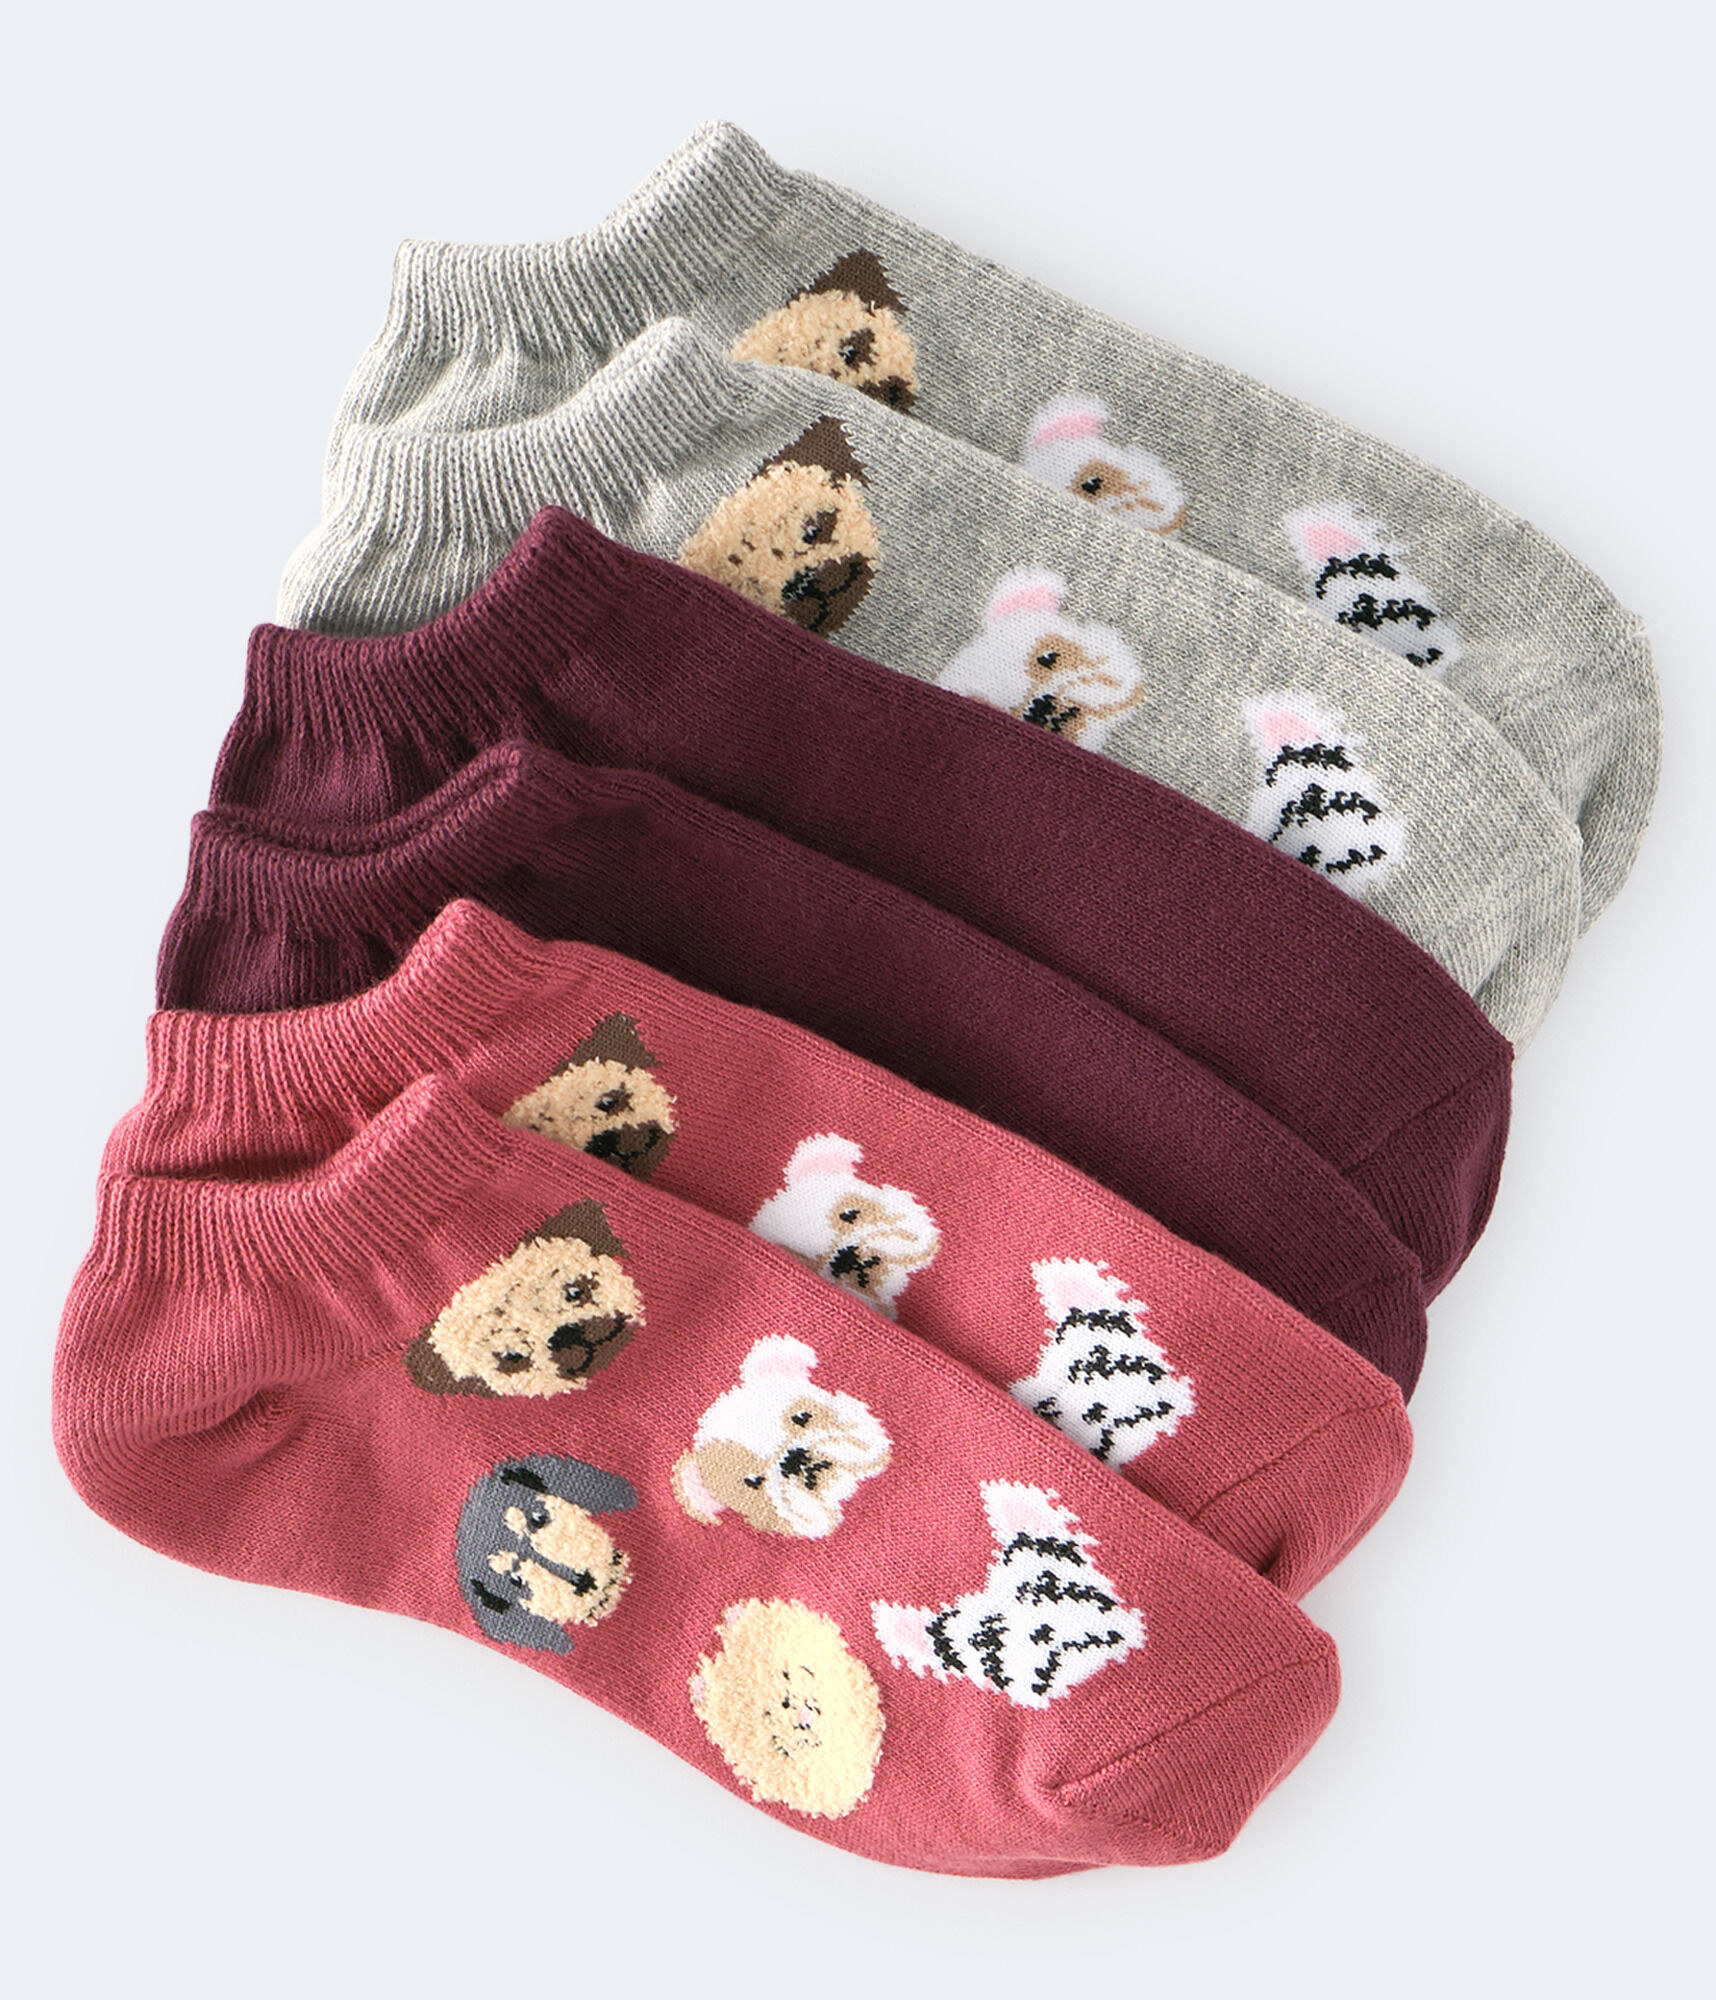 Three pairs of socks: Two printed with Pug, Dachshund, Pomeranian, Bulldog, and Westie faces (some of which are fuzzy) in red and gray, and one solid burgundy pair